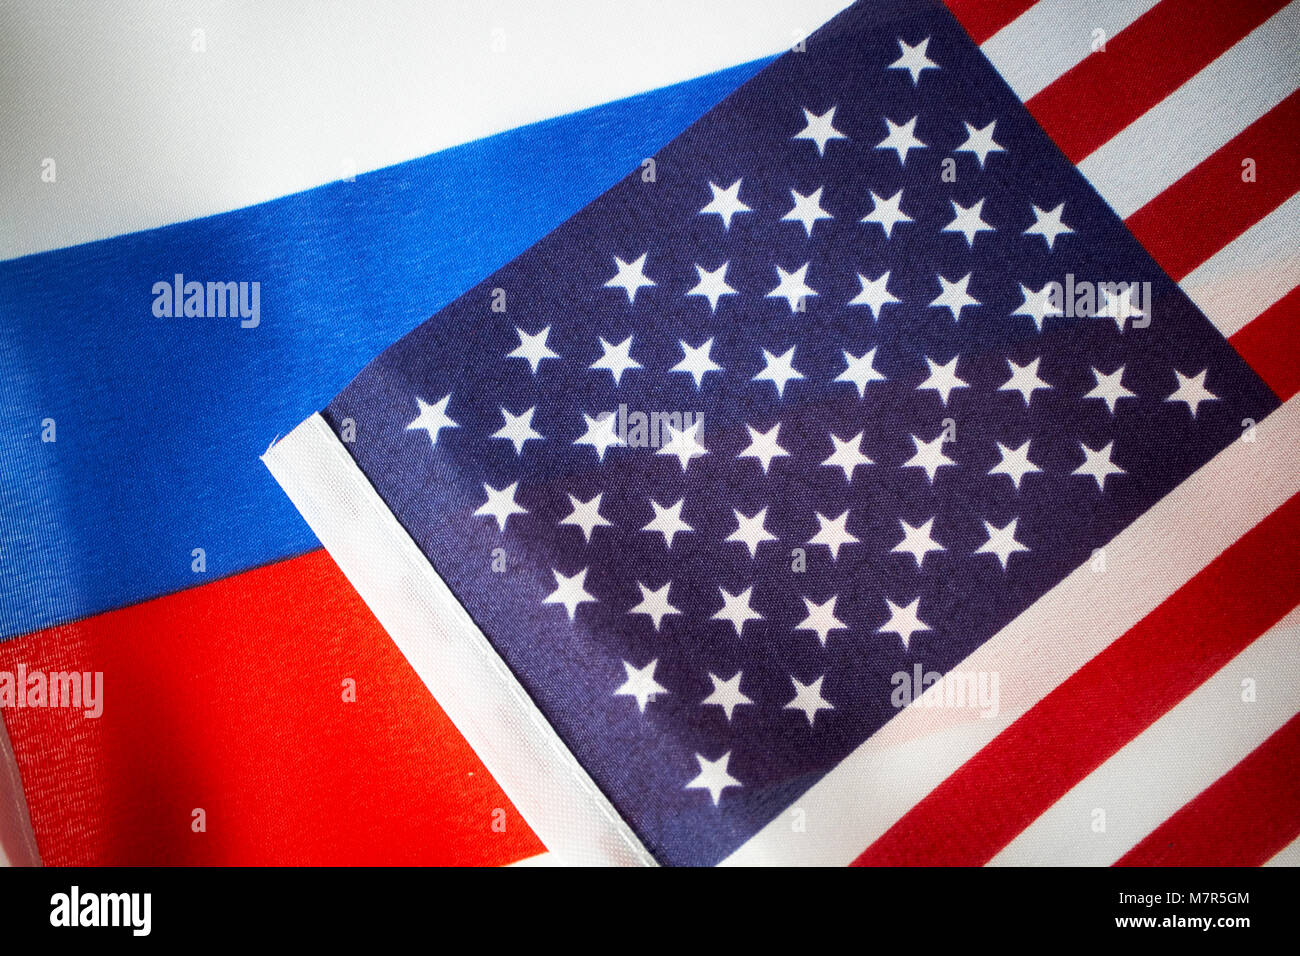 russian and us stars and stripes flag flags - Stock Image